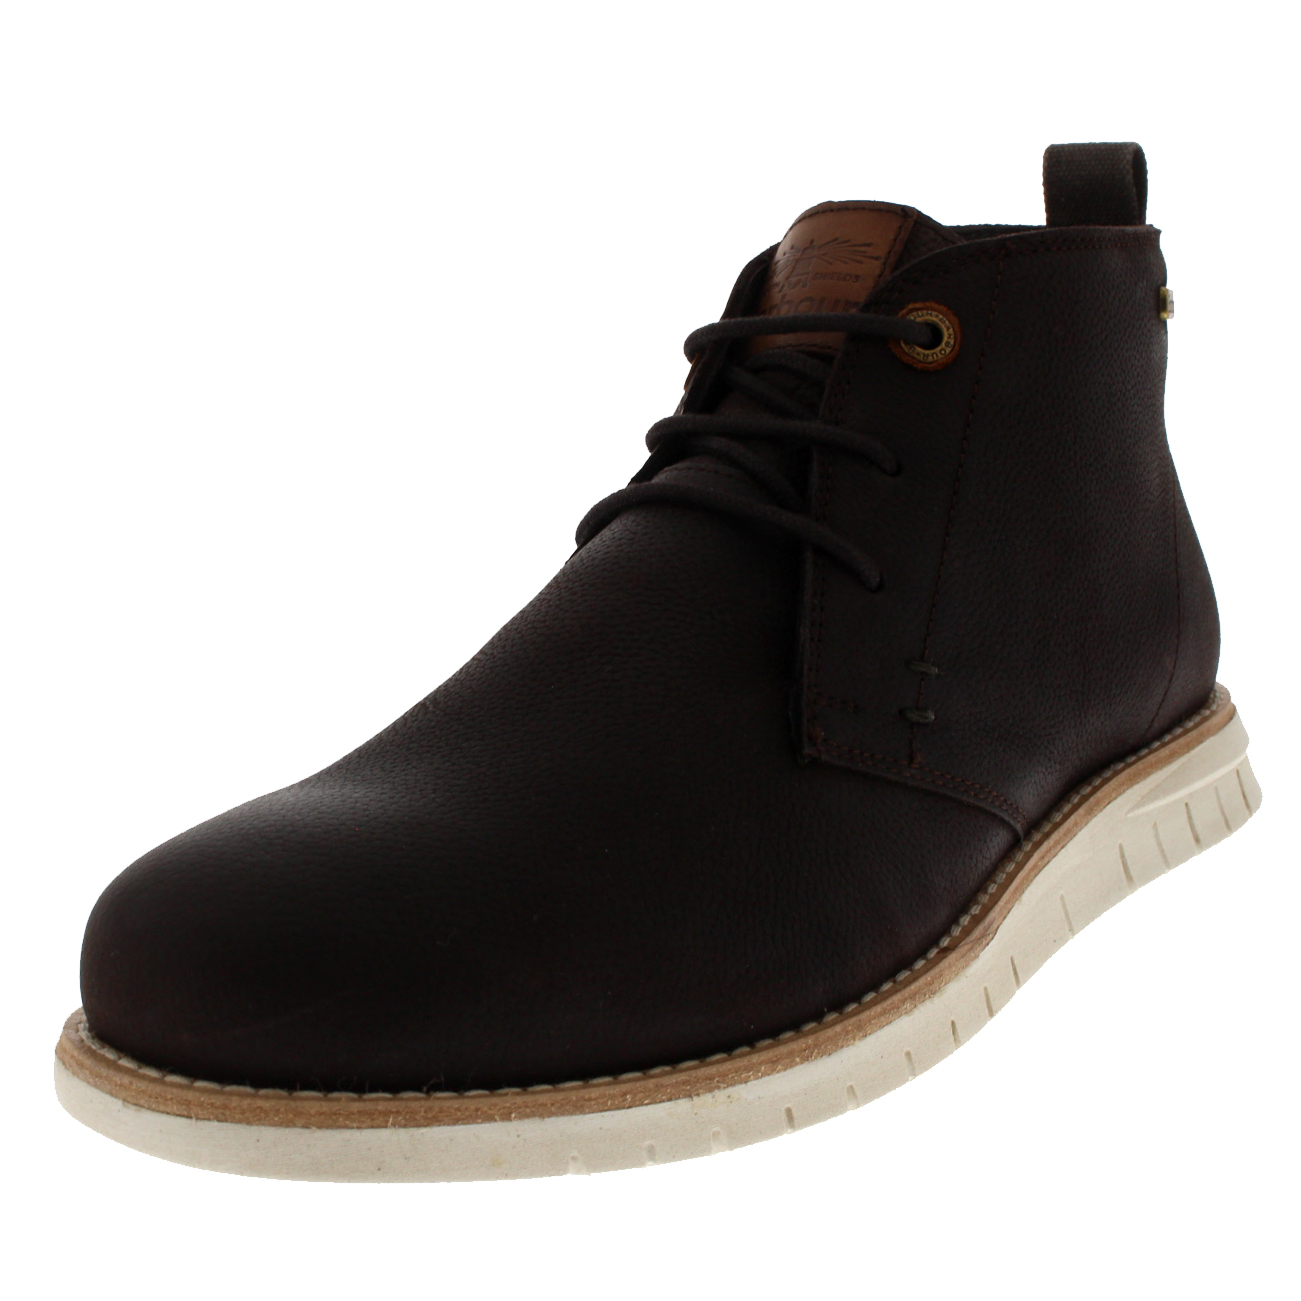 740e817e24d Details about Mens Barbour Burghley Smart Winter Casual Ankle Chukka Nubuck  Boots US 6.5-12.5